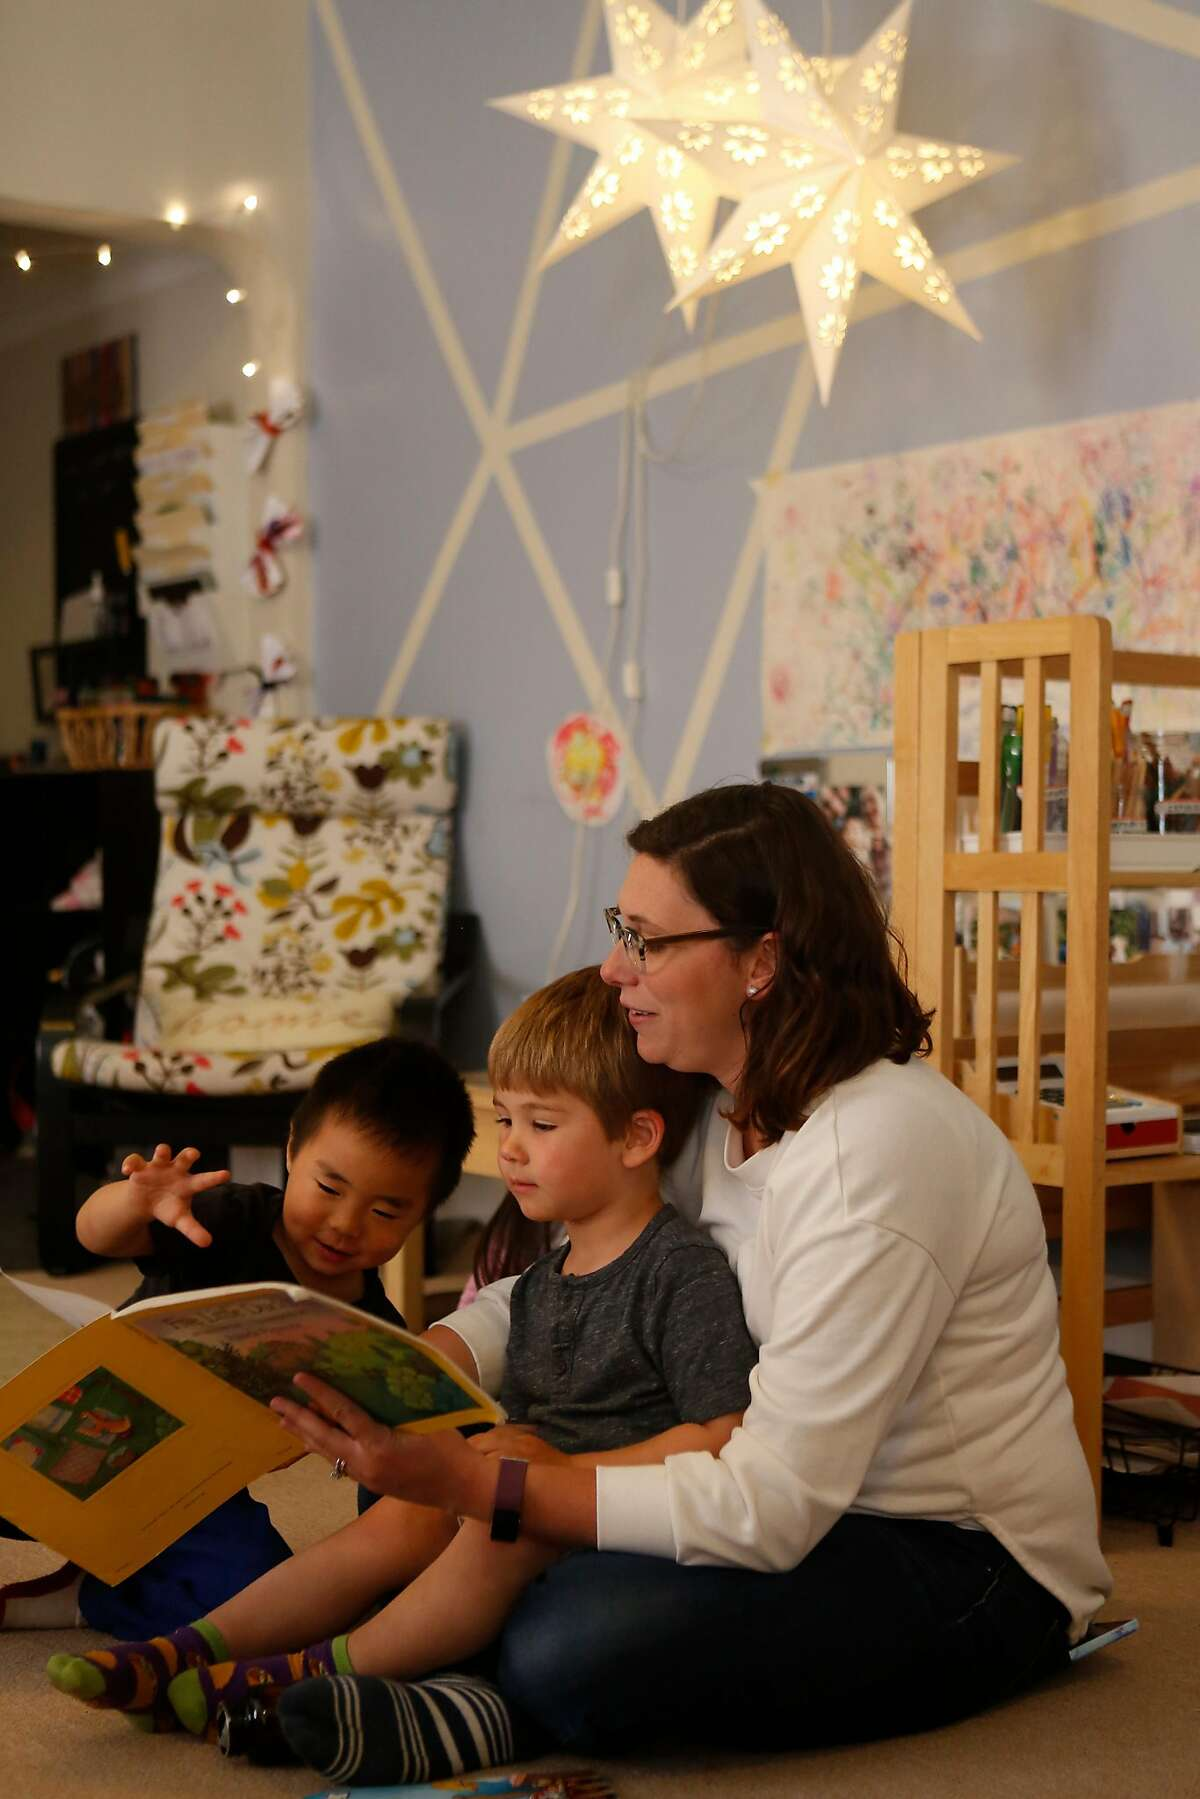 Kristina Gonzalez, reads a book to preschool students Luca, center, and Zane, left, at her home on Thursday, June 14, 2018 in San Francisco, Calif. Gonzalez operates Little Robles, a Spanish immersion program, that was born from Wonderschool, a start-up that helps people create preschools in their homes.